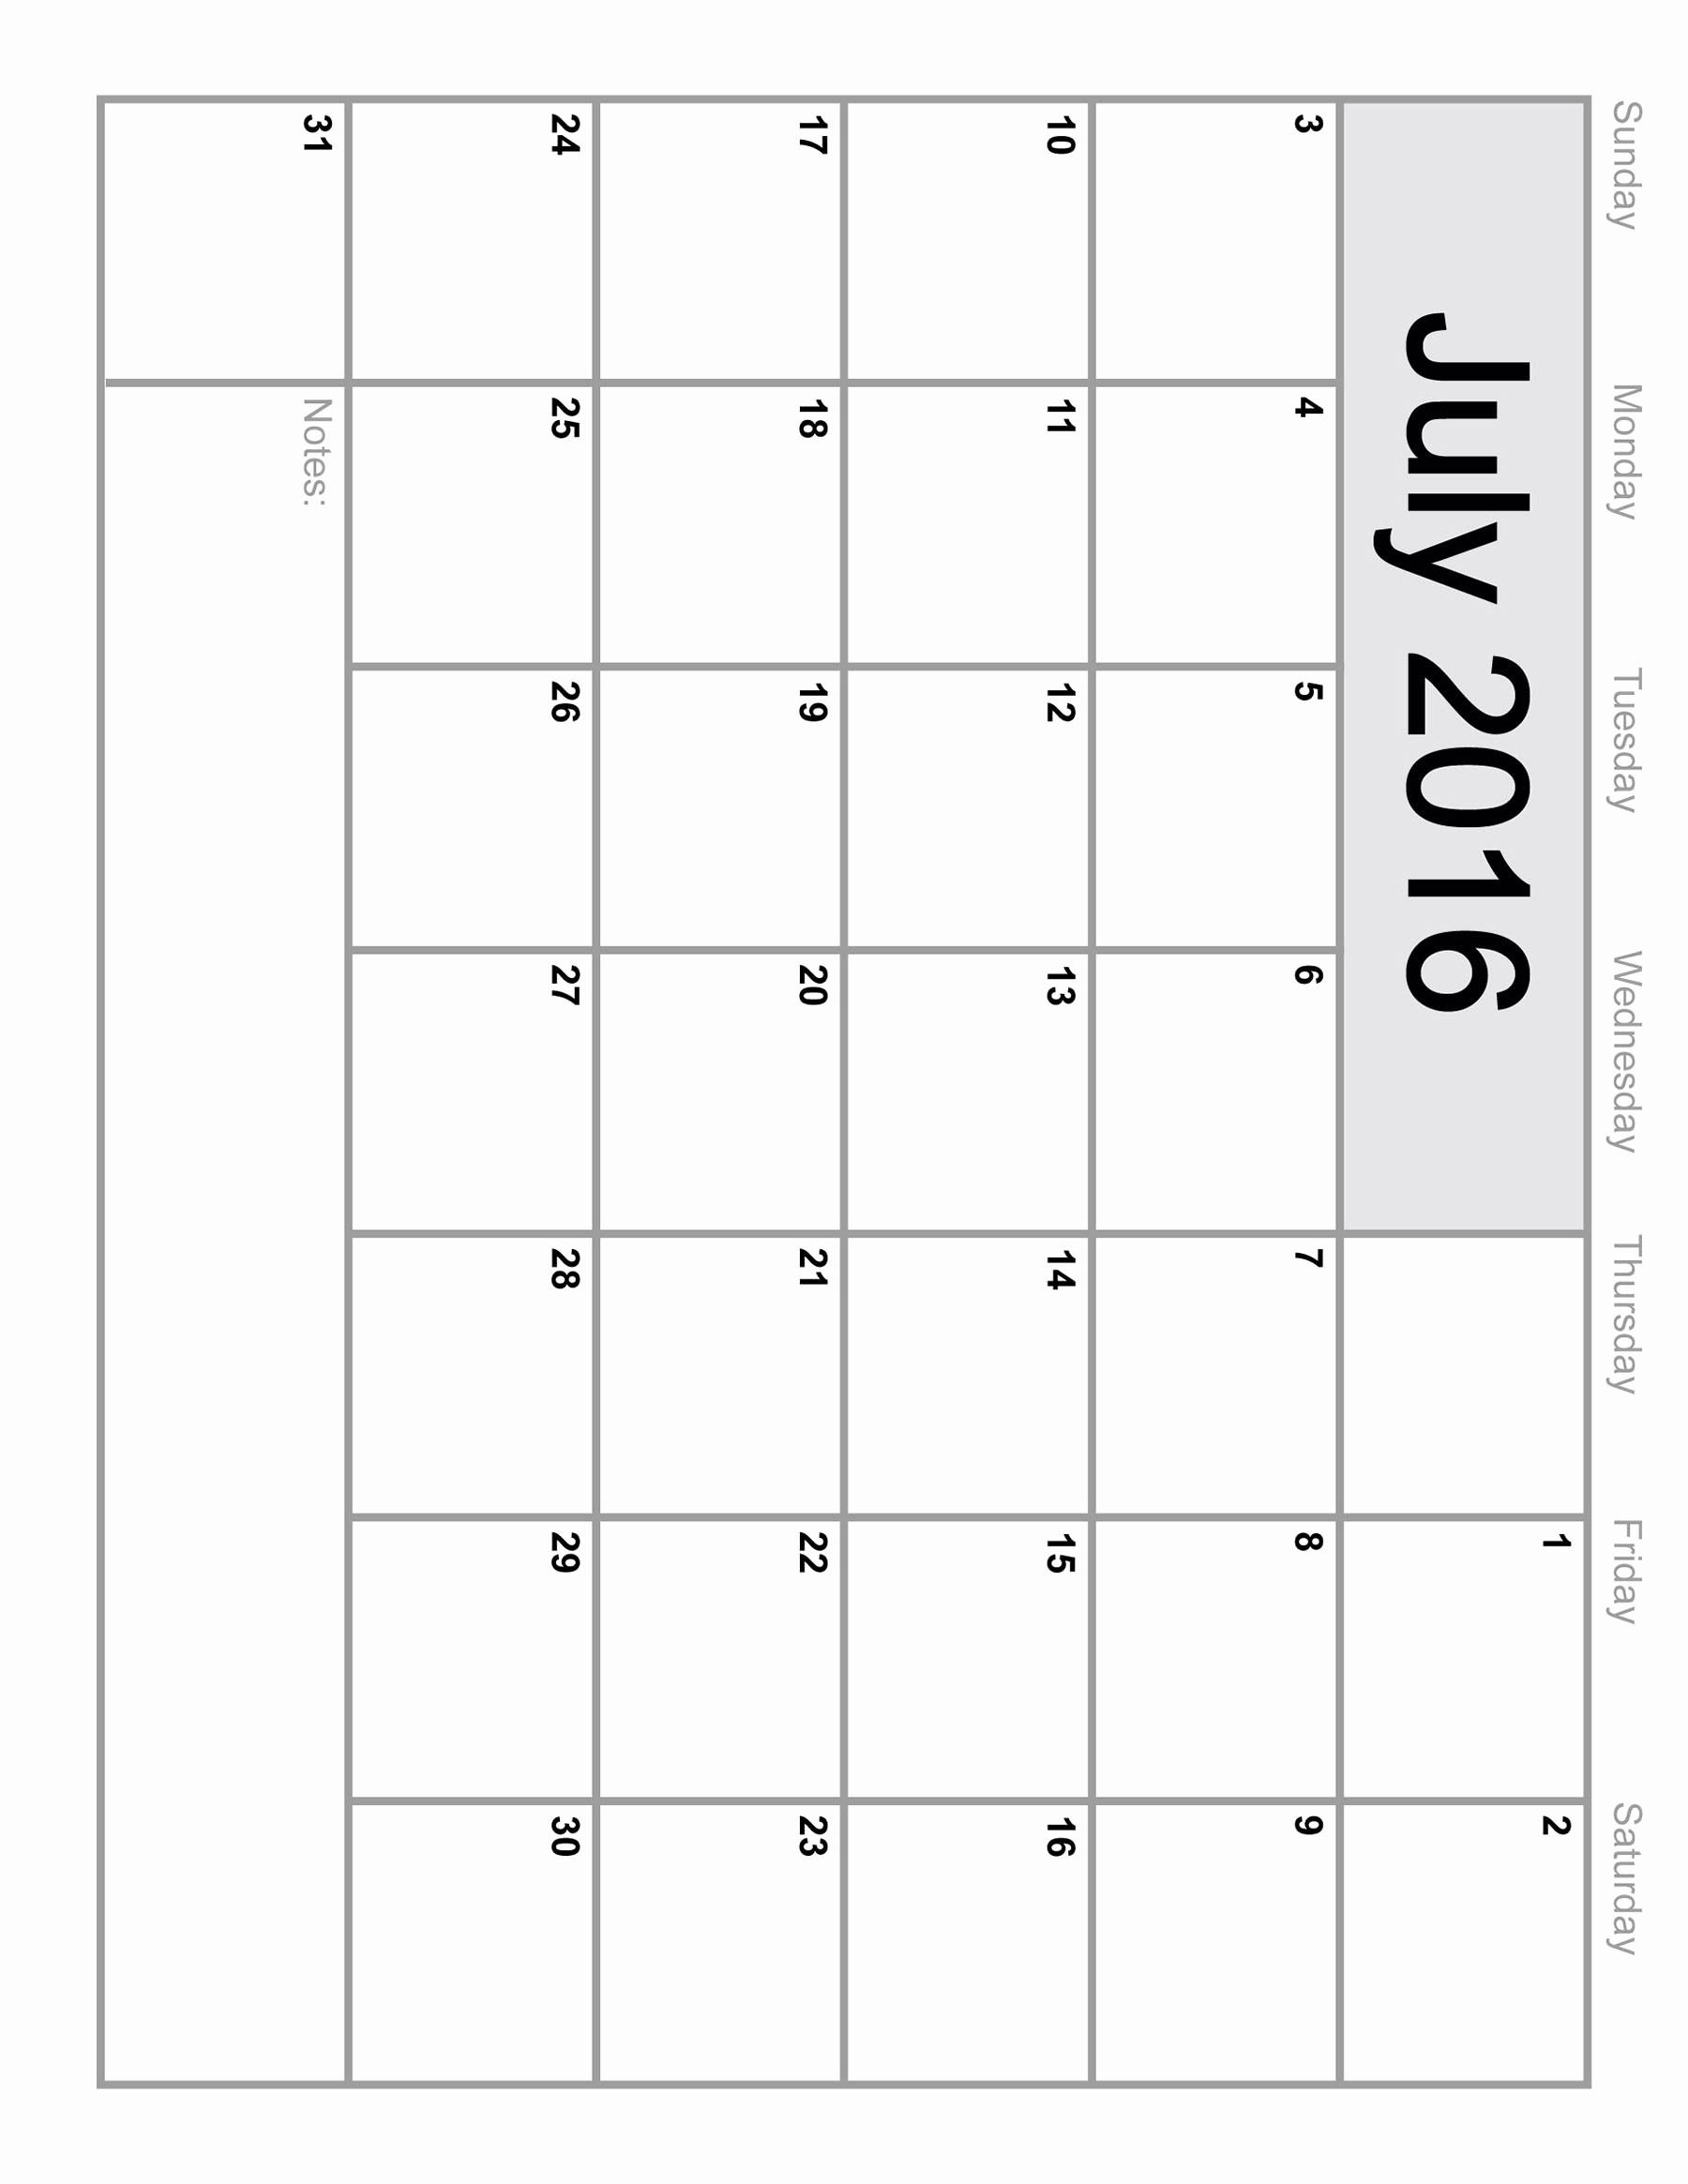 3 Month Calendar Printable 2016 New 3 Month June July August Calendar 2016 Printable